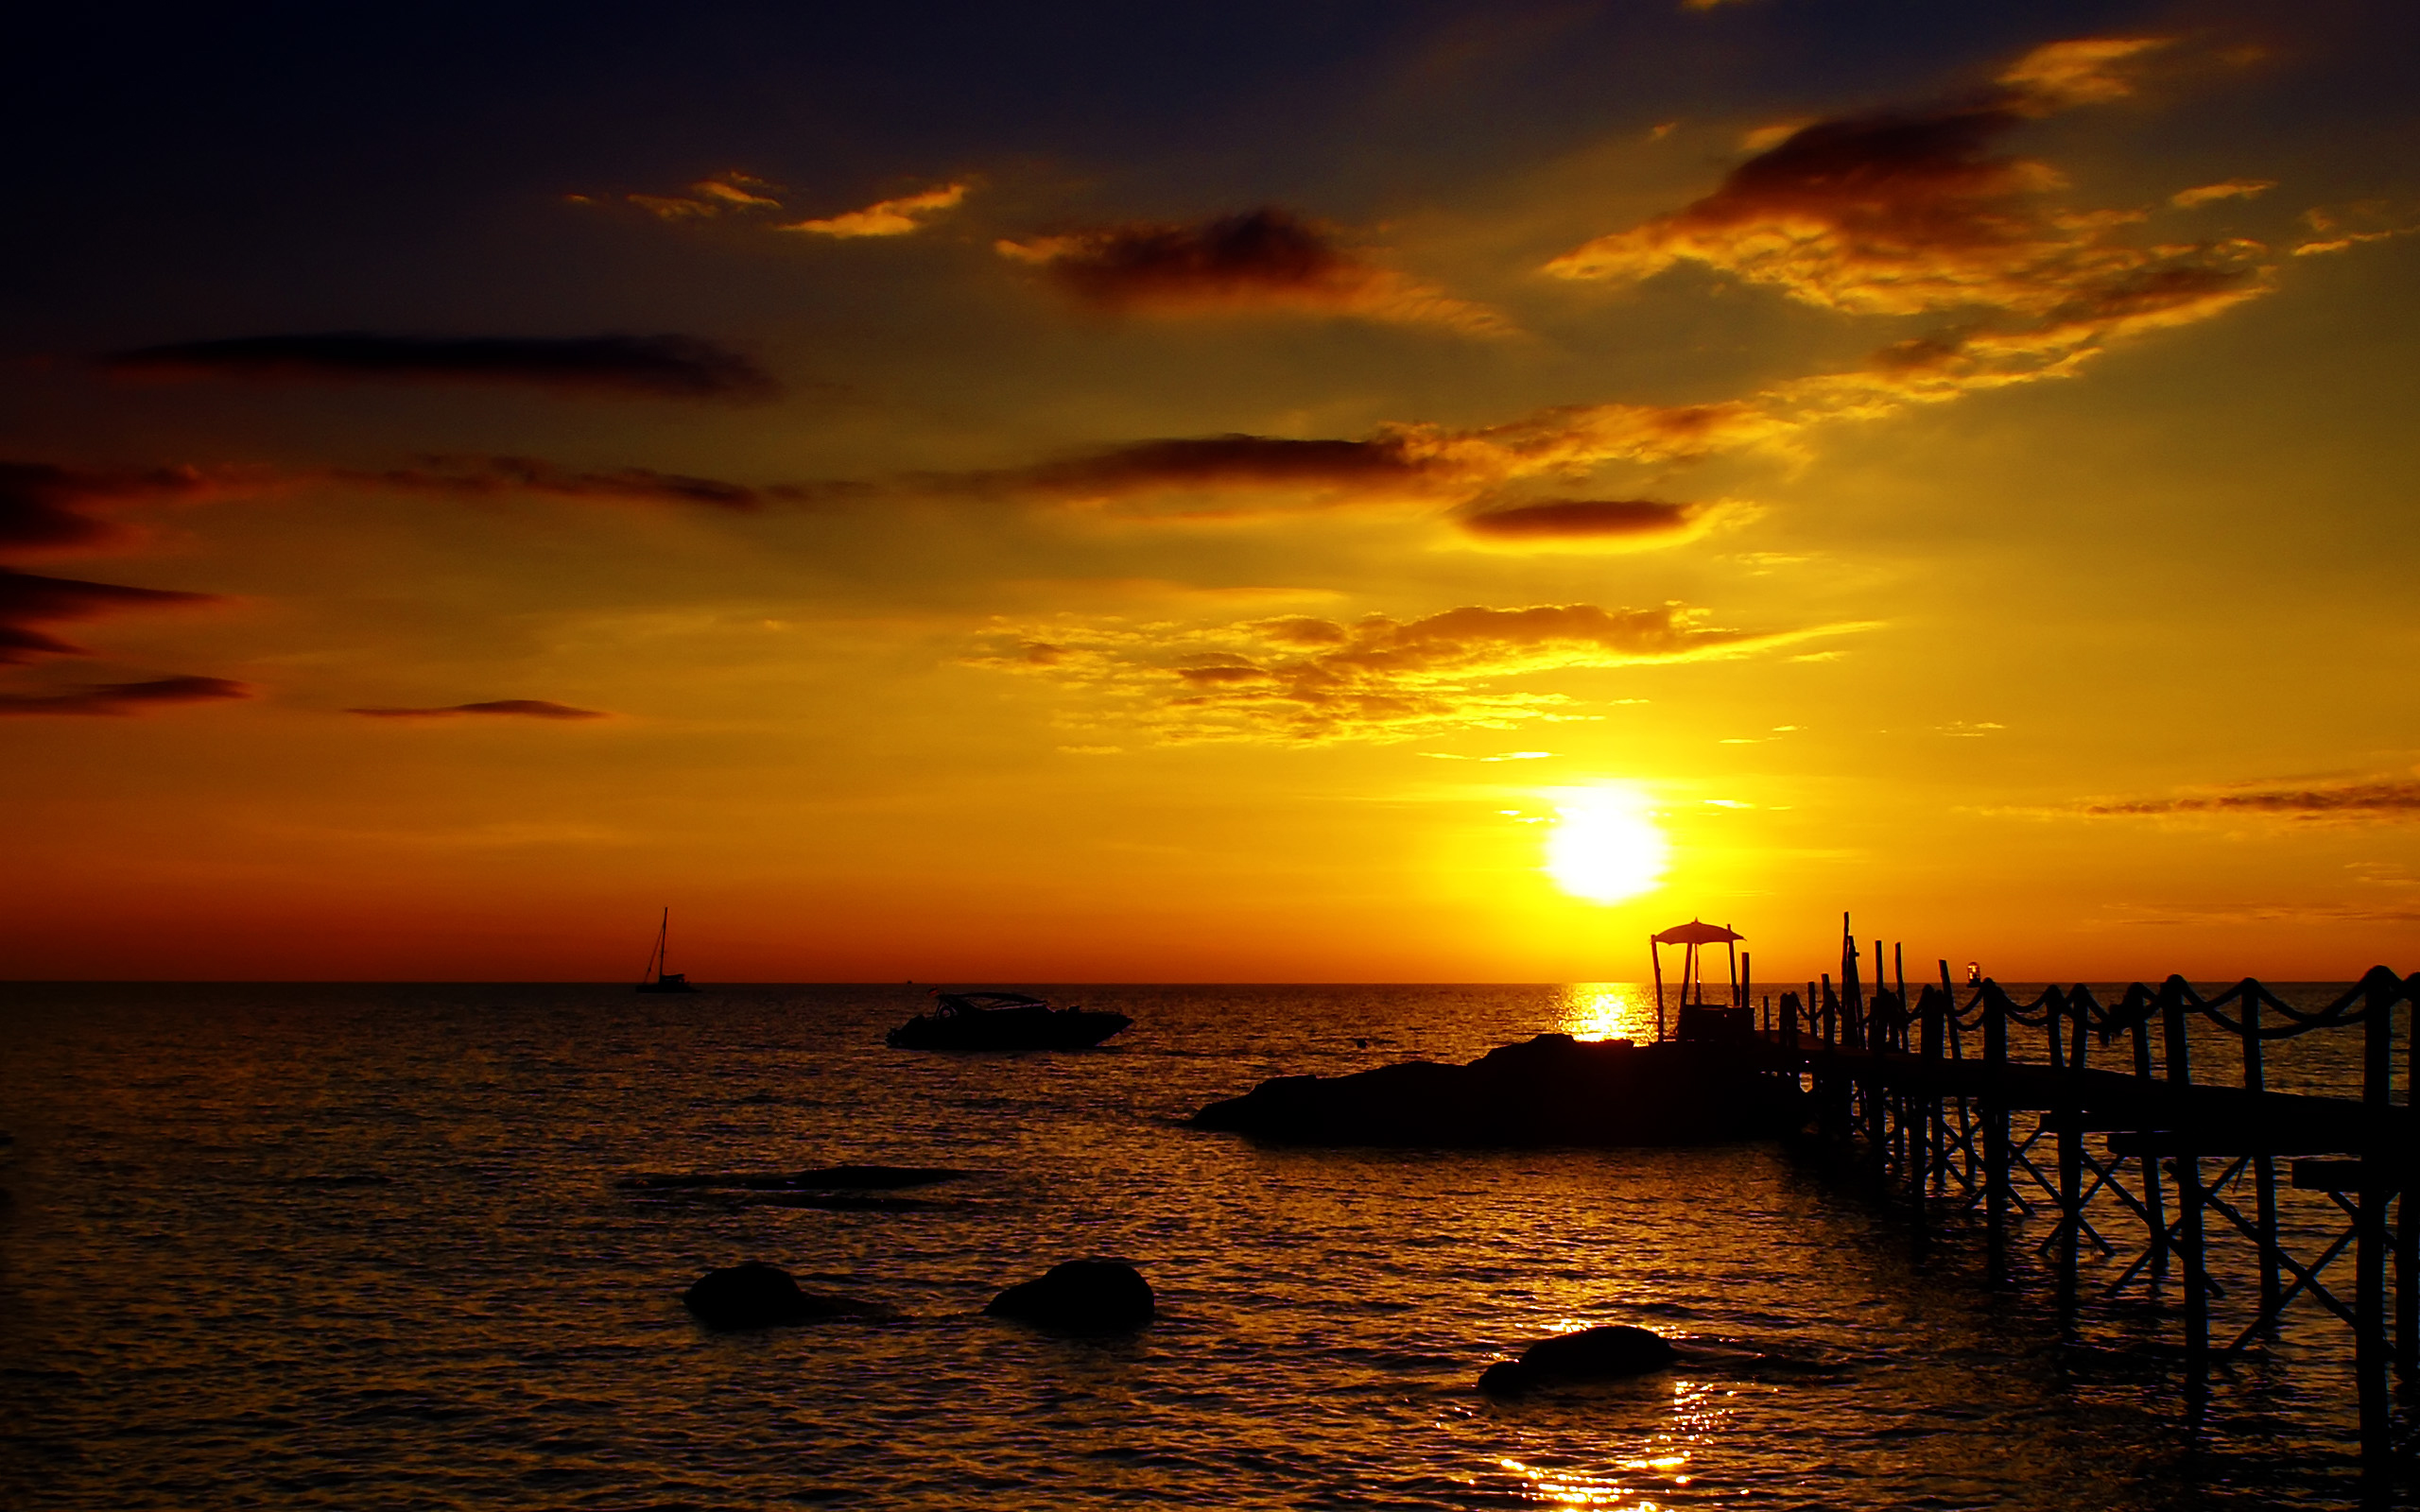 ocean sunset wallpaper 1920x1080p - HD Desktop Wallpapers ...